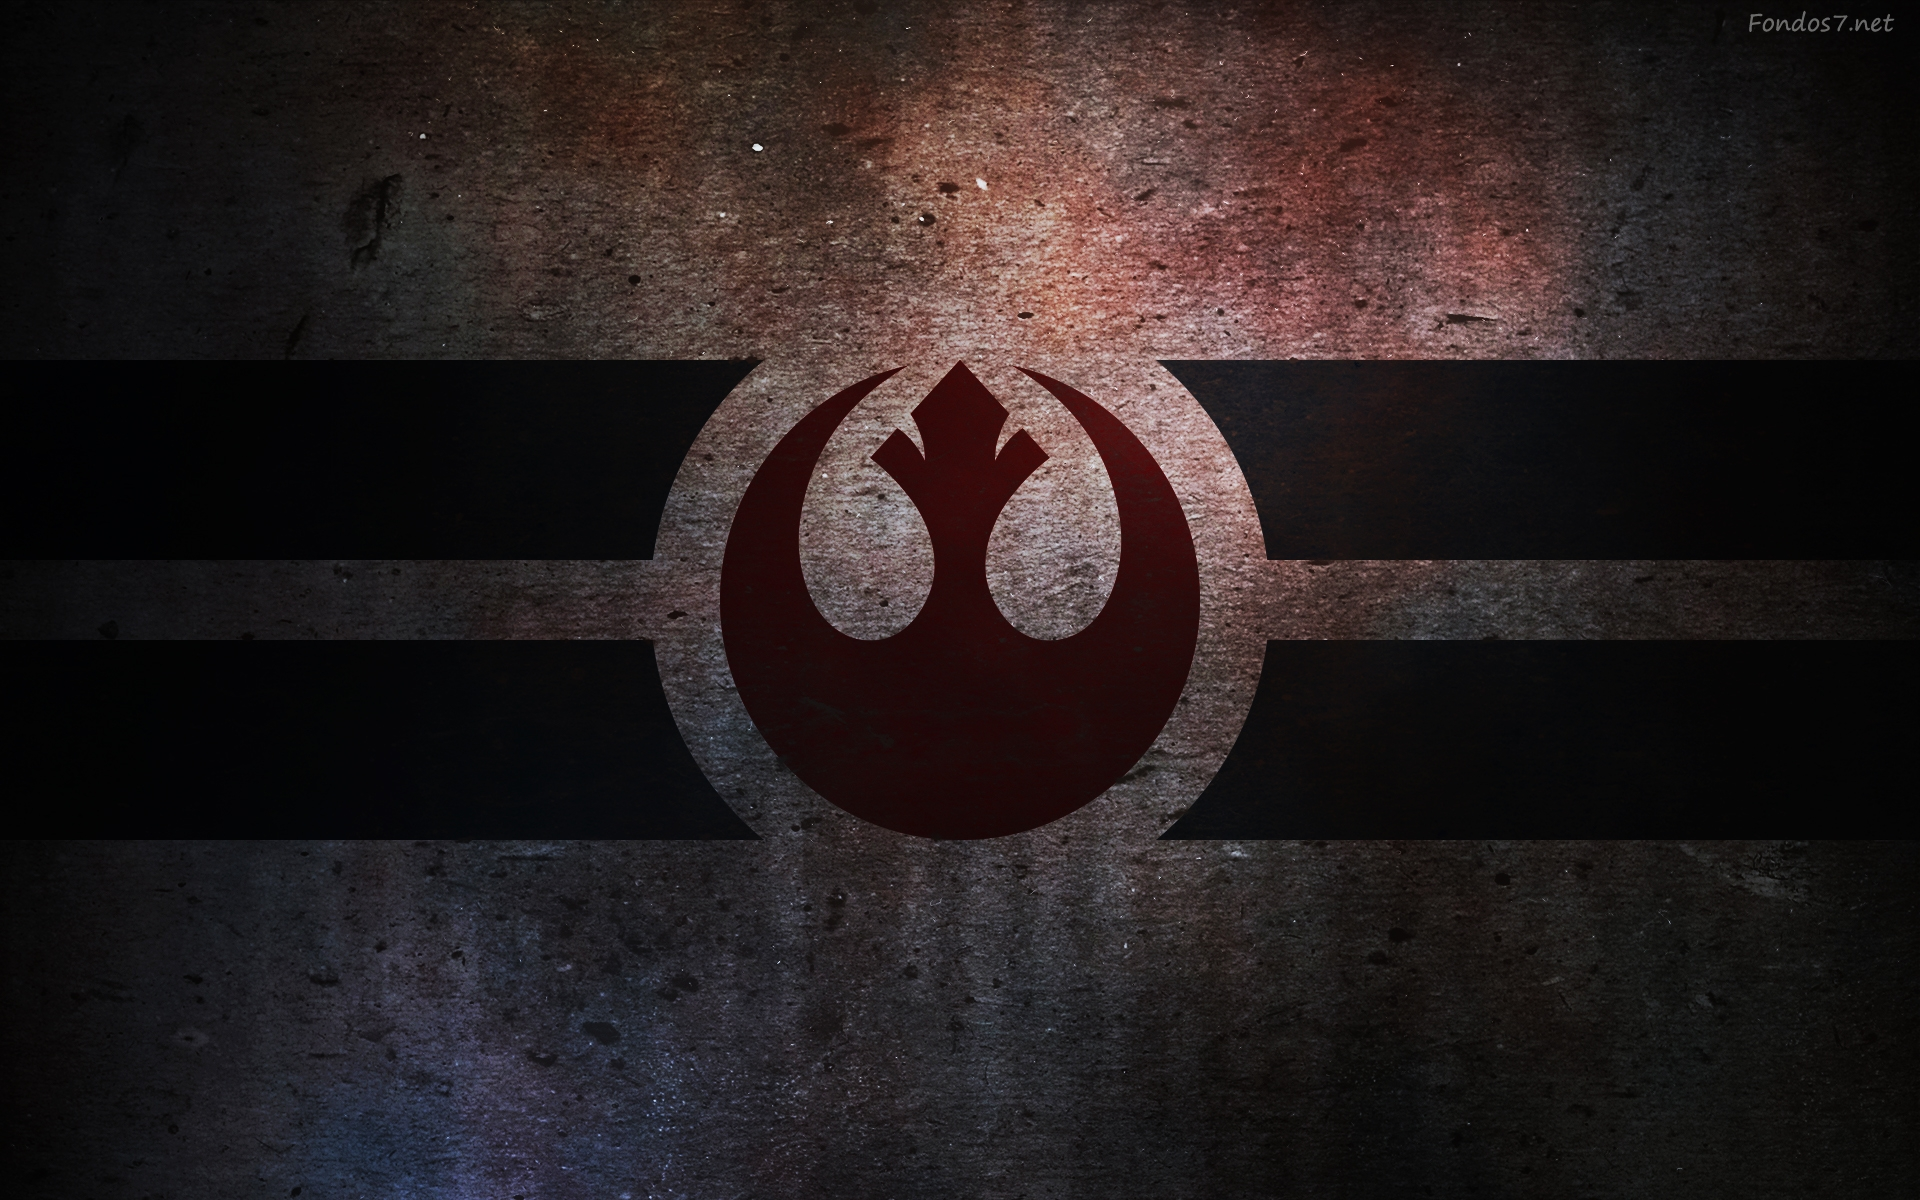 wallpapers star wars iphone 5